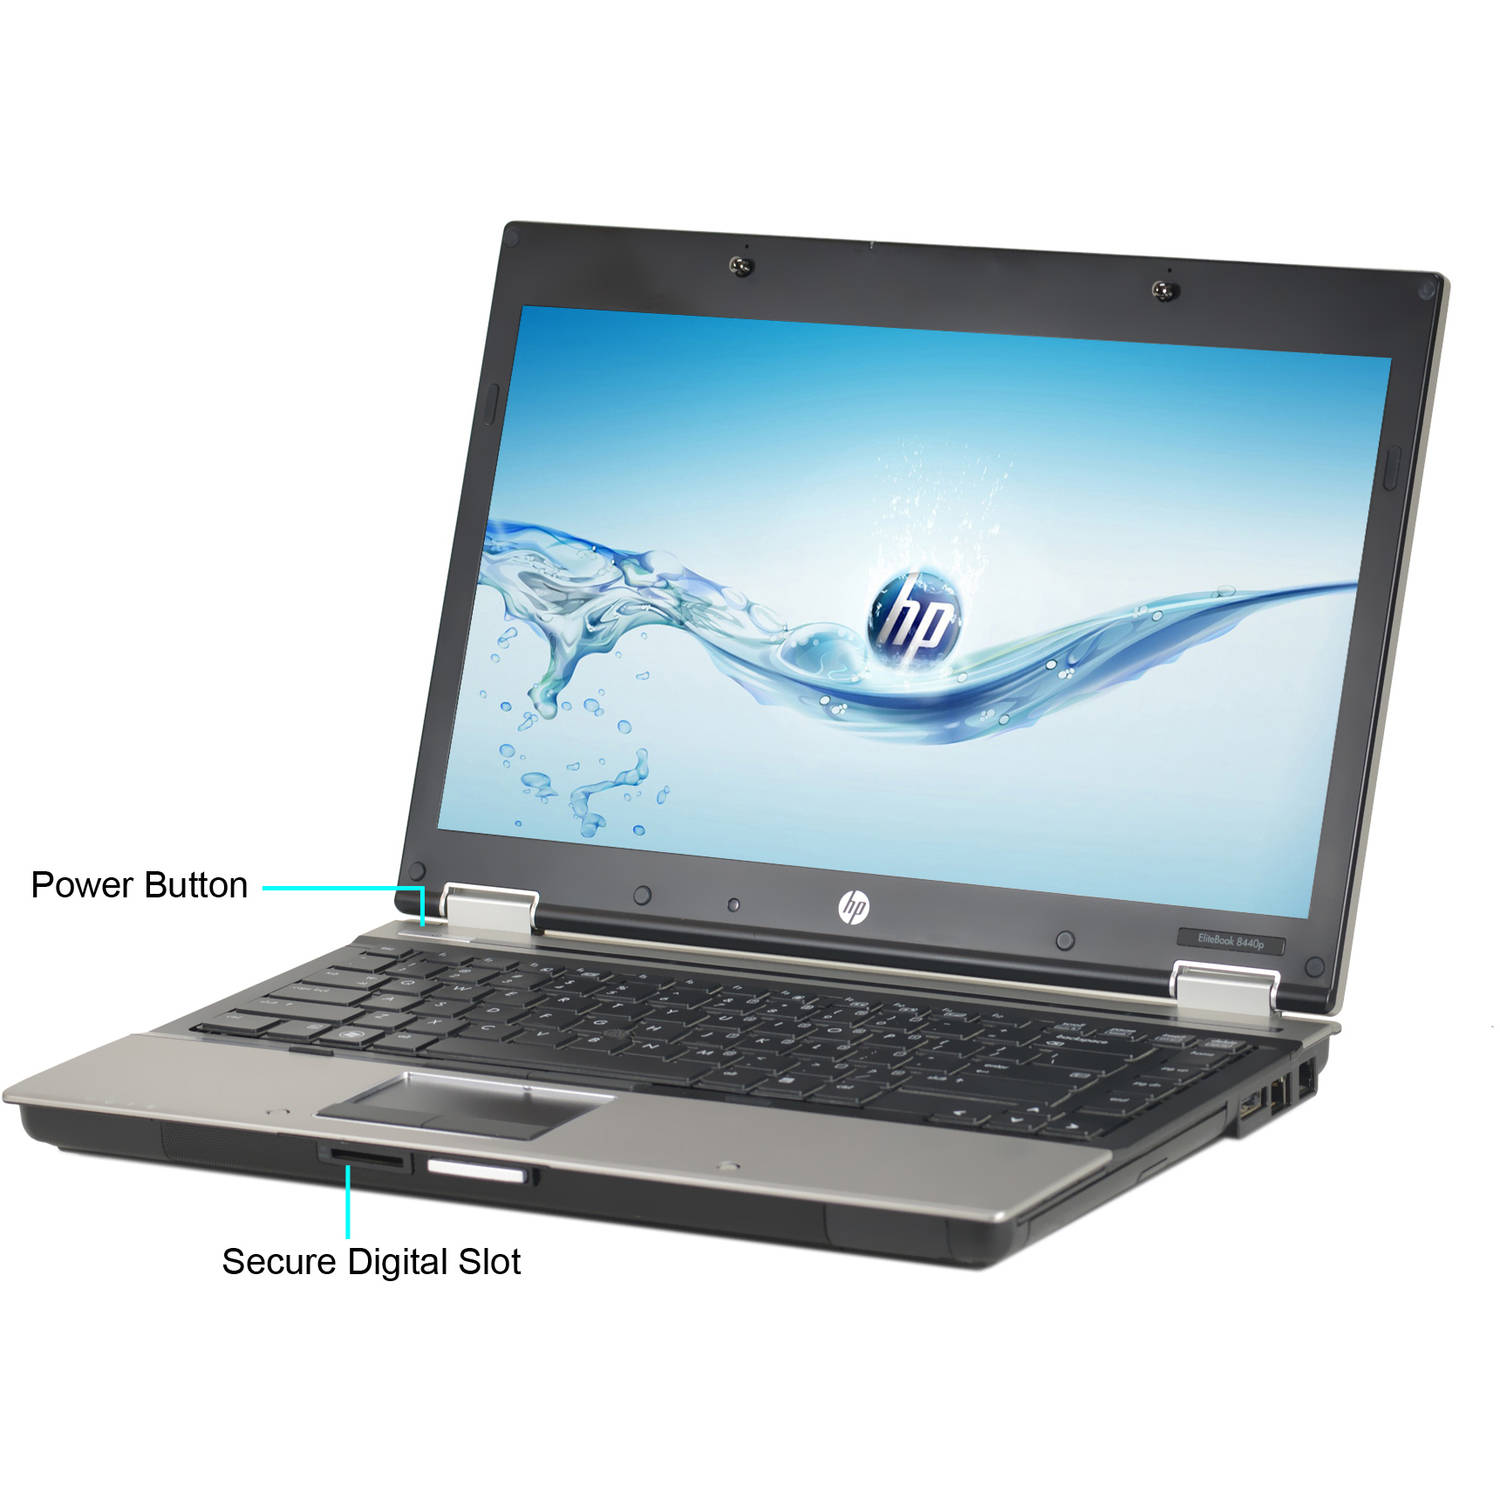 Refurbished Hp Silver 141 Elitebook 8440p Laptop Pc With Intel Switch Power Lenovo G485 Core I5 520m Processor 4gb Memory 500gb Hard Drive And Windows 10 Home